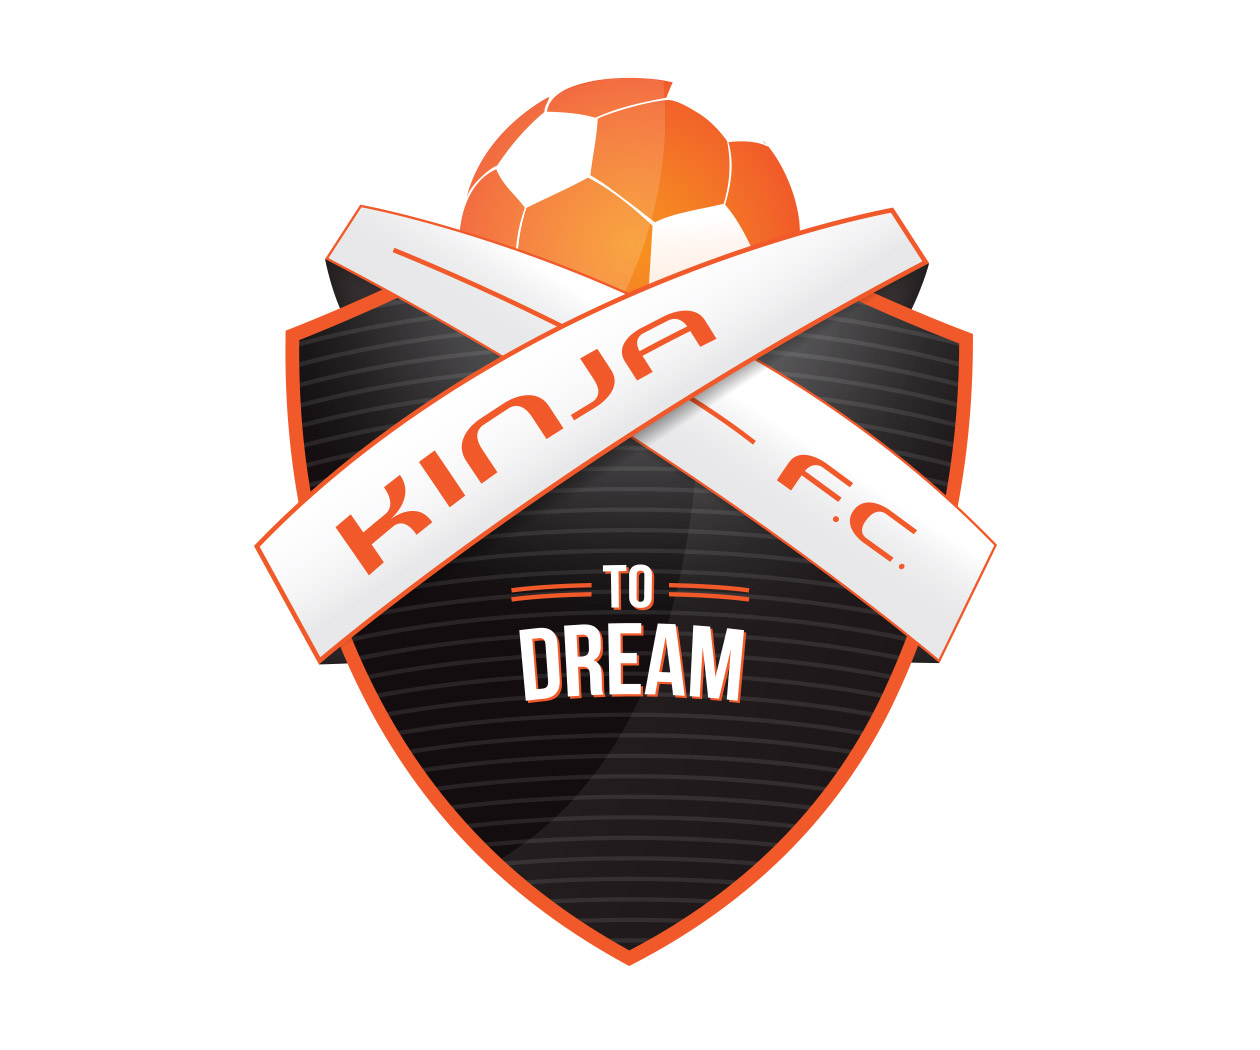 custom soccer logo design for kinja fc soccer by jordan fretz design